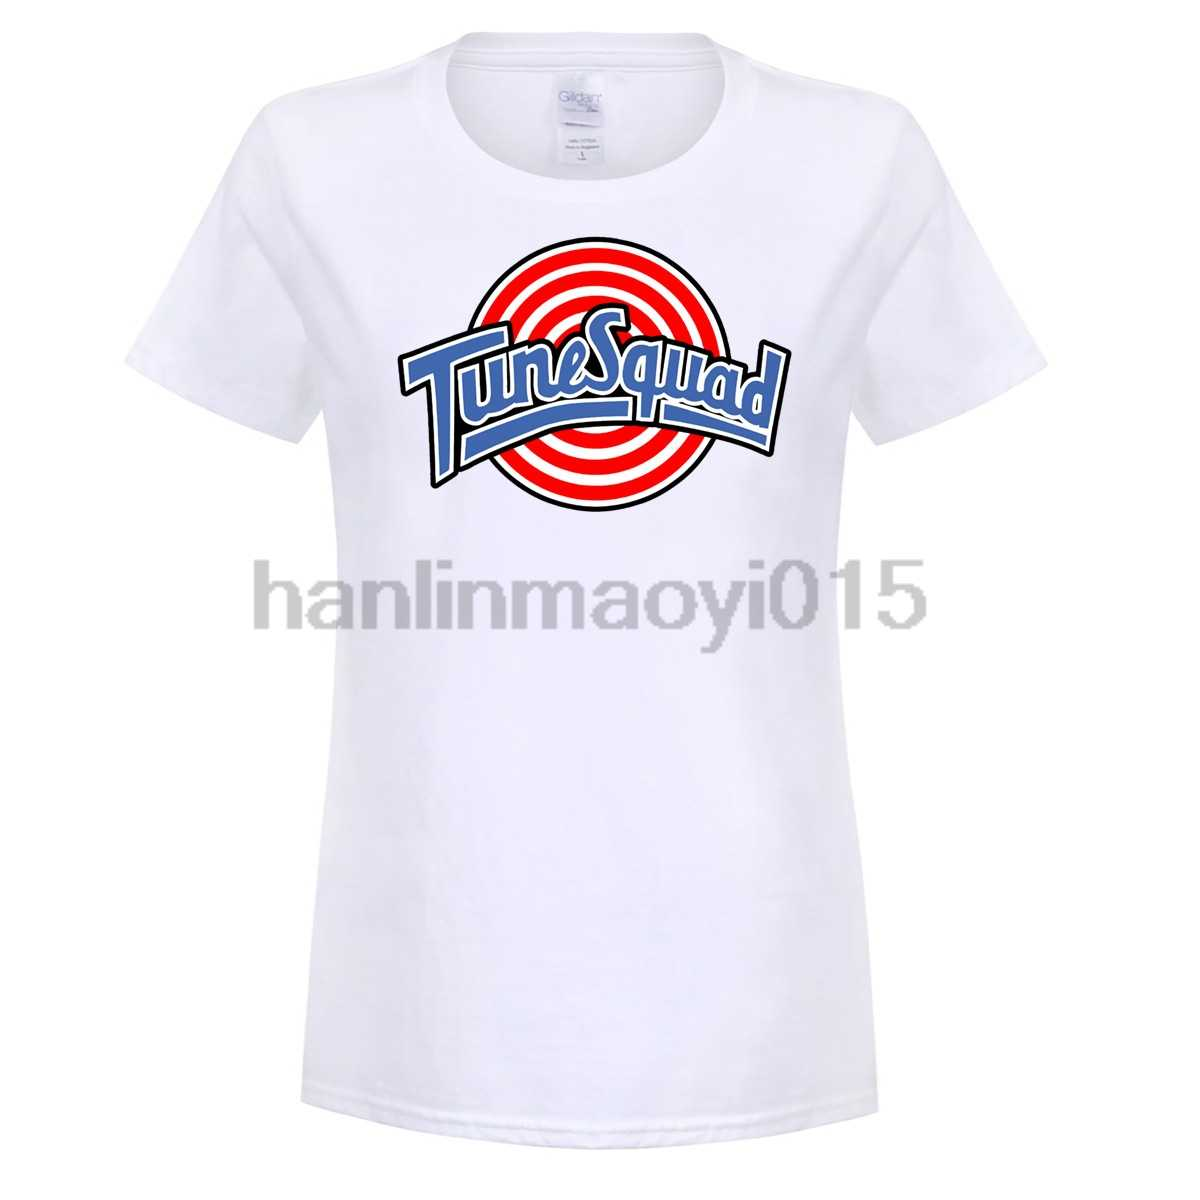 5f8f5f30 Detail Feedback Questions about 100% Cotton O neck printed T shirt ...